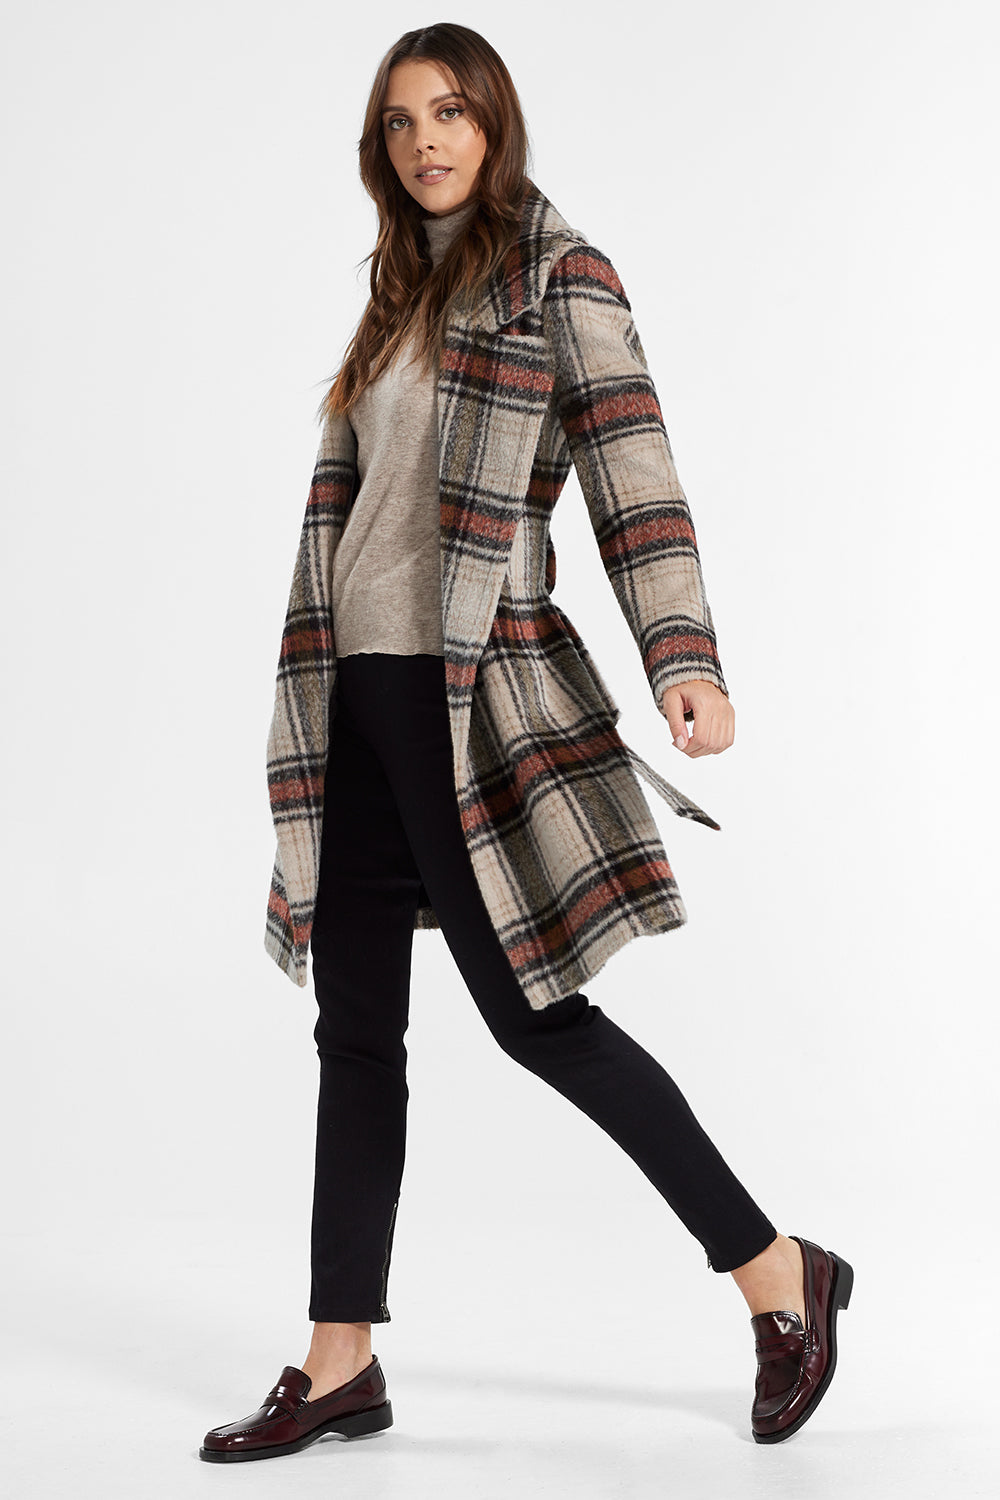 Sentaler Plaid Mid Length Notched Collar Wrap Coat featured in Suri Alpaca and available in Sand Plaid. Seen from side.